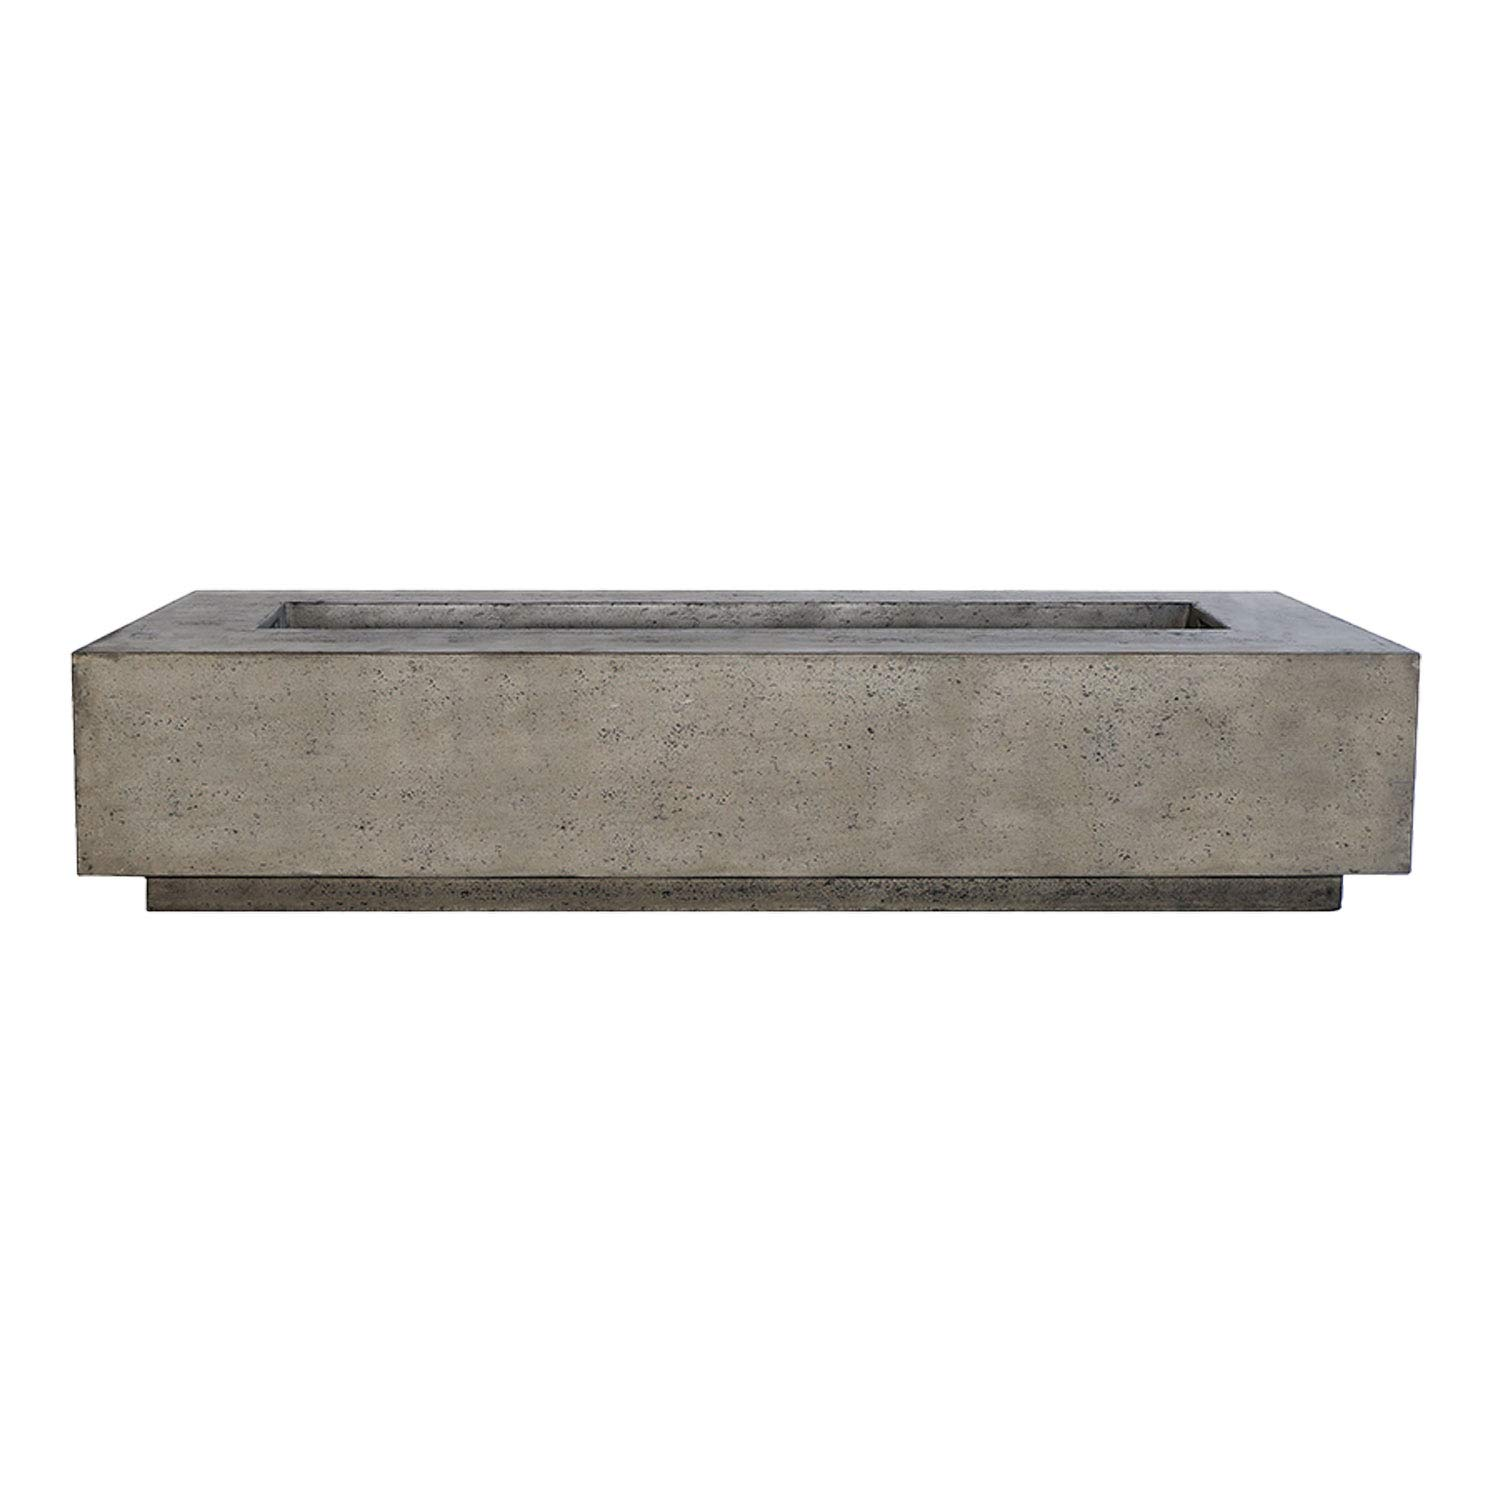 Prism Hardscapes Tavola 6 Concrete Gas Fire Pit (PH-415-4NG), Natural Gas, Pewter, 90x38-Inch by Prism Hardscapes